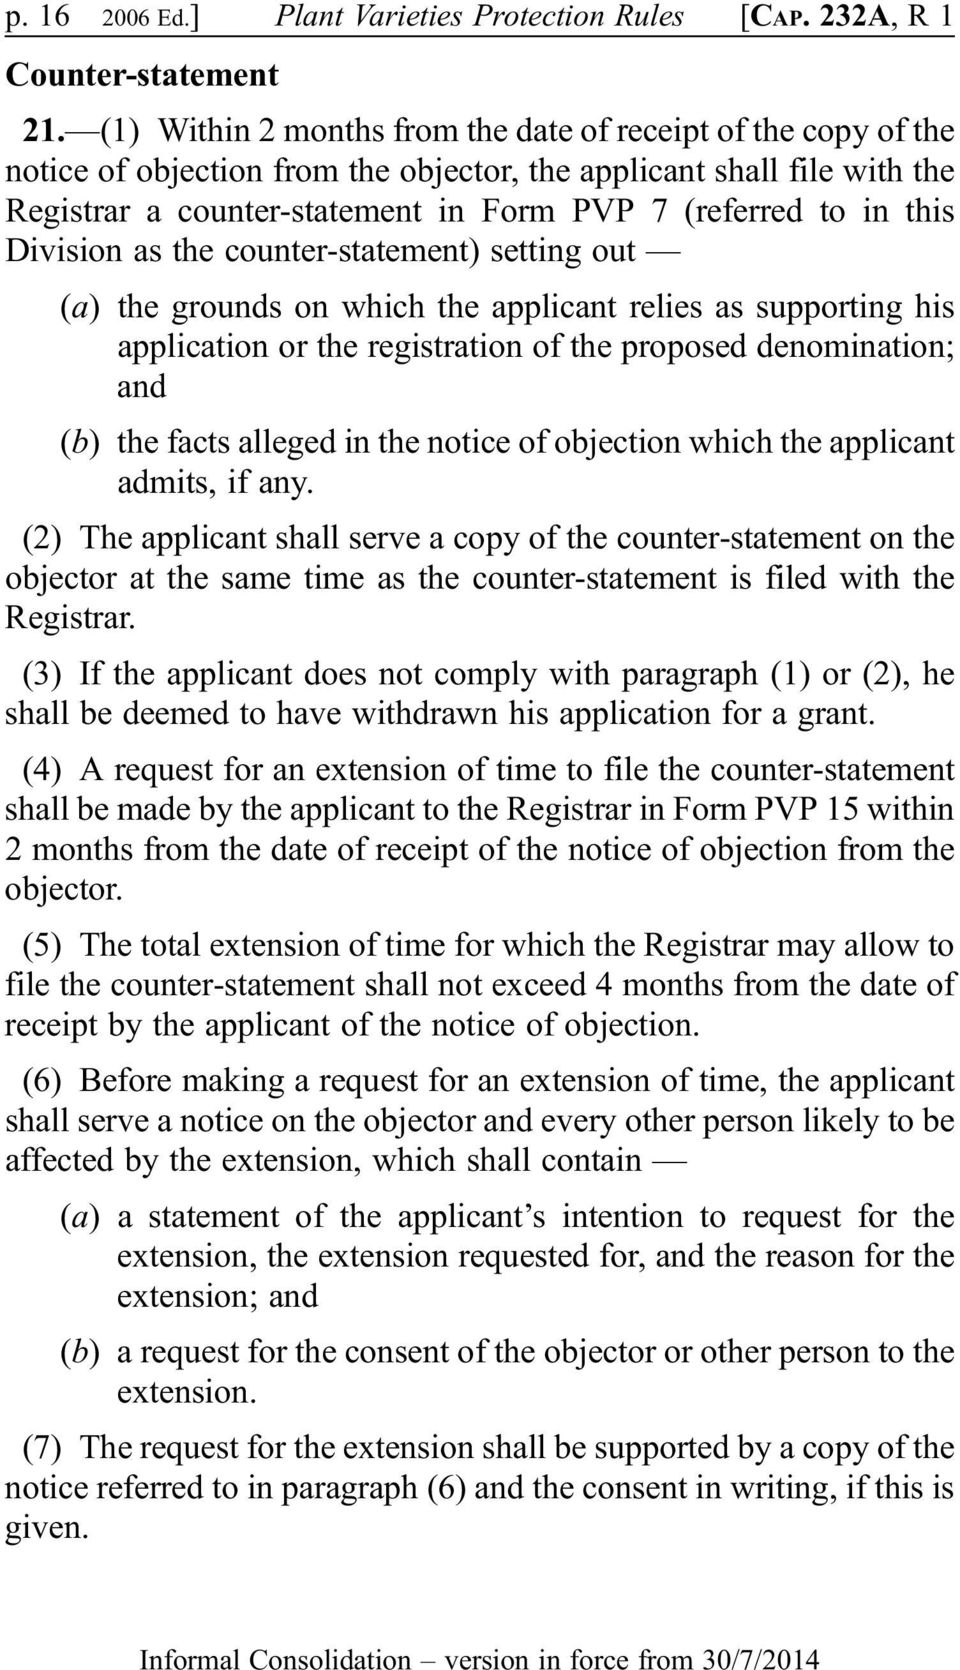 this Division as the counter-statement) setting out (a) the grounds on which the applicant relies as supporting his application or the registration of the proposed denomination; and (b) the facts